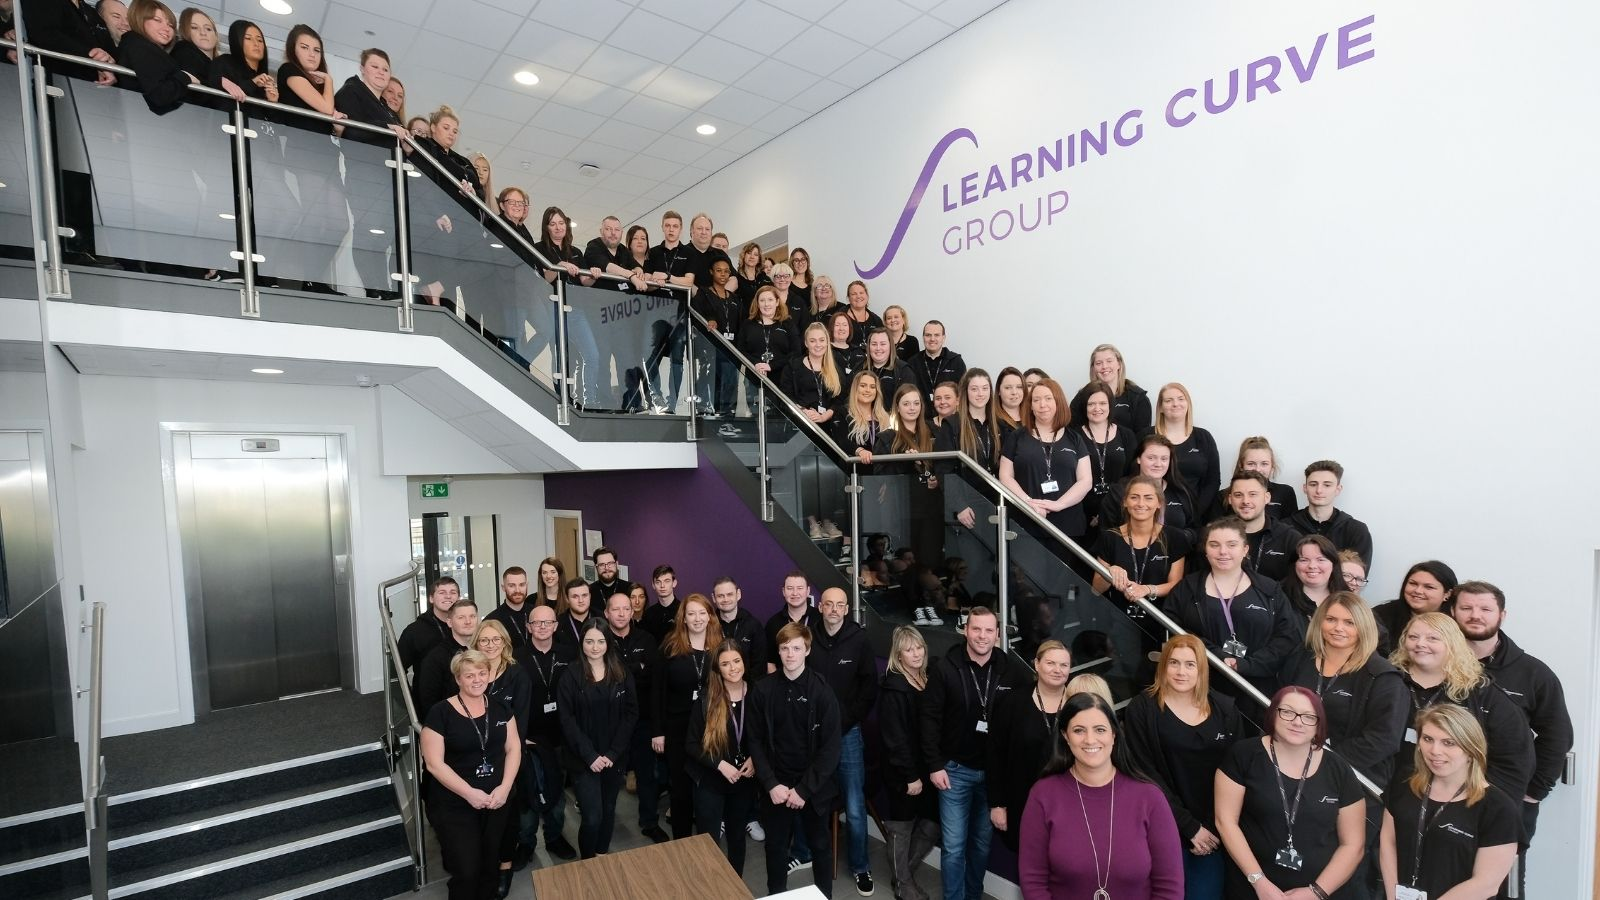 Drum Business Park - Learning Curve Group Limited